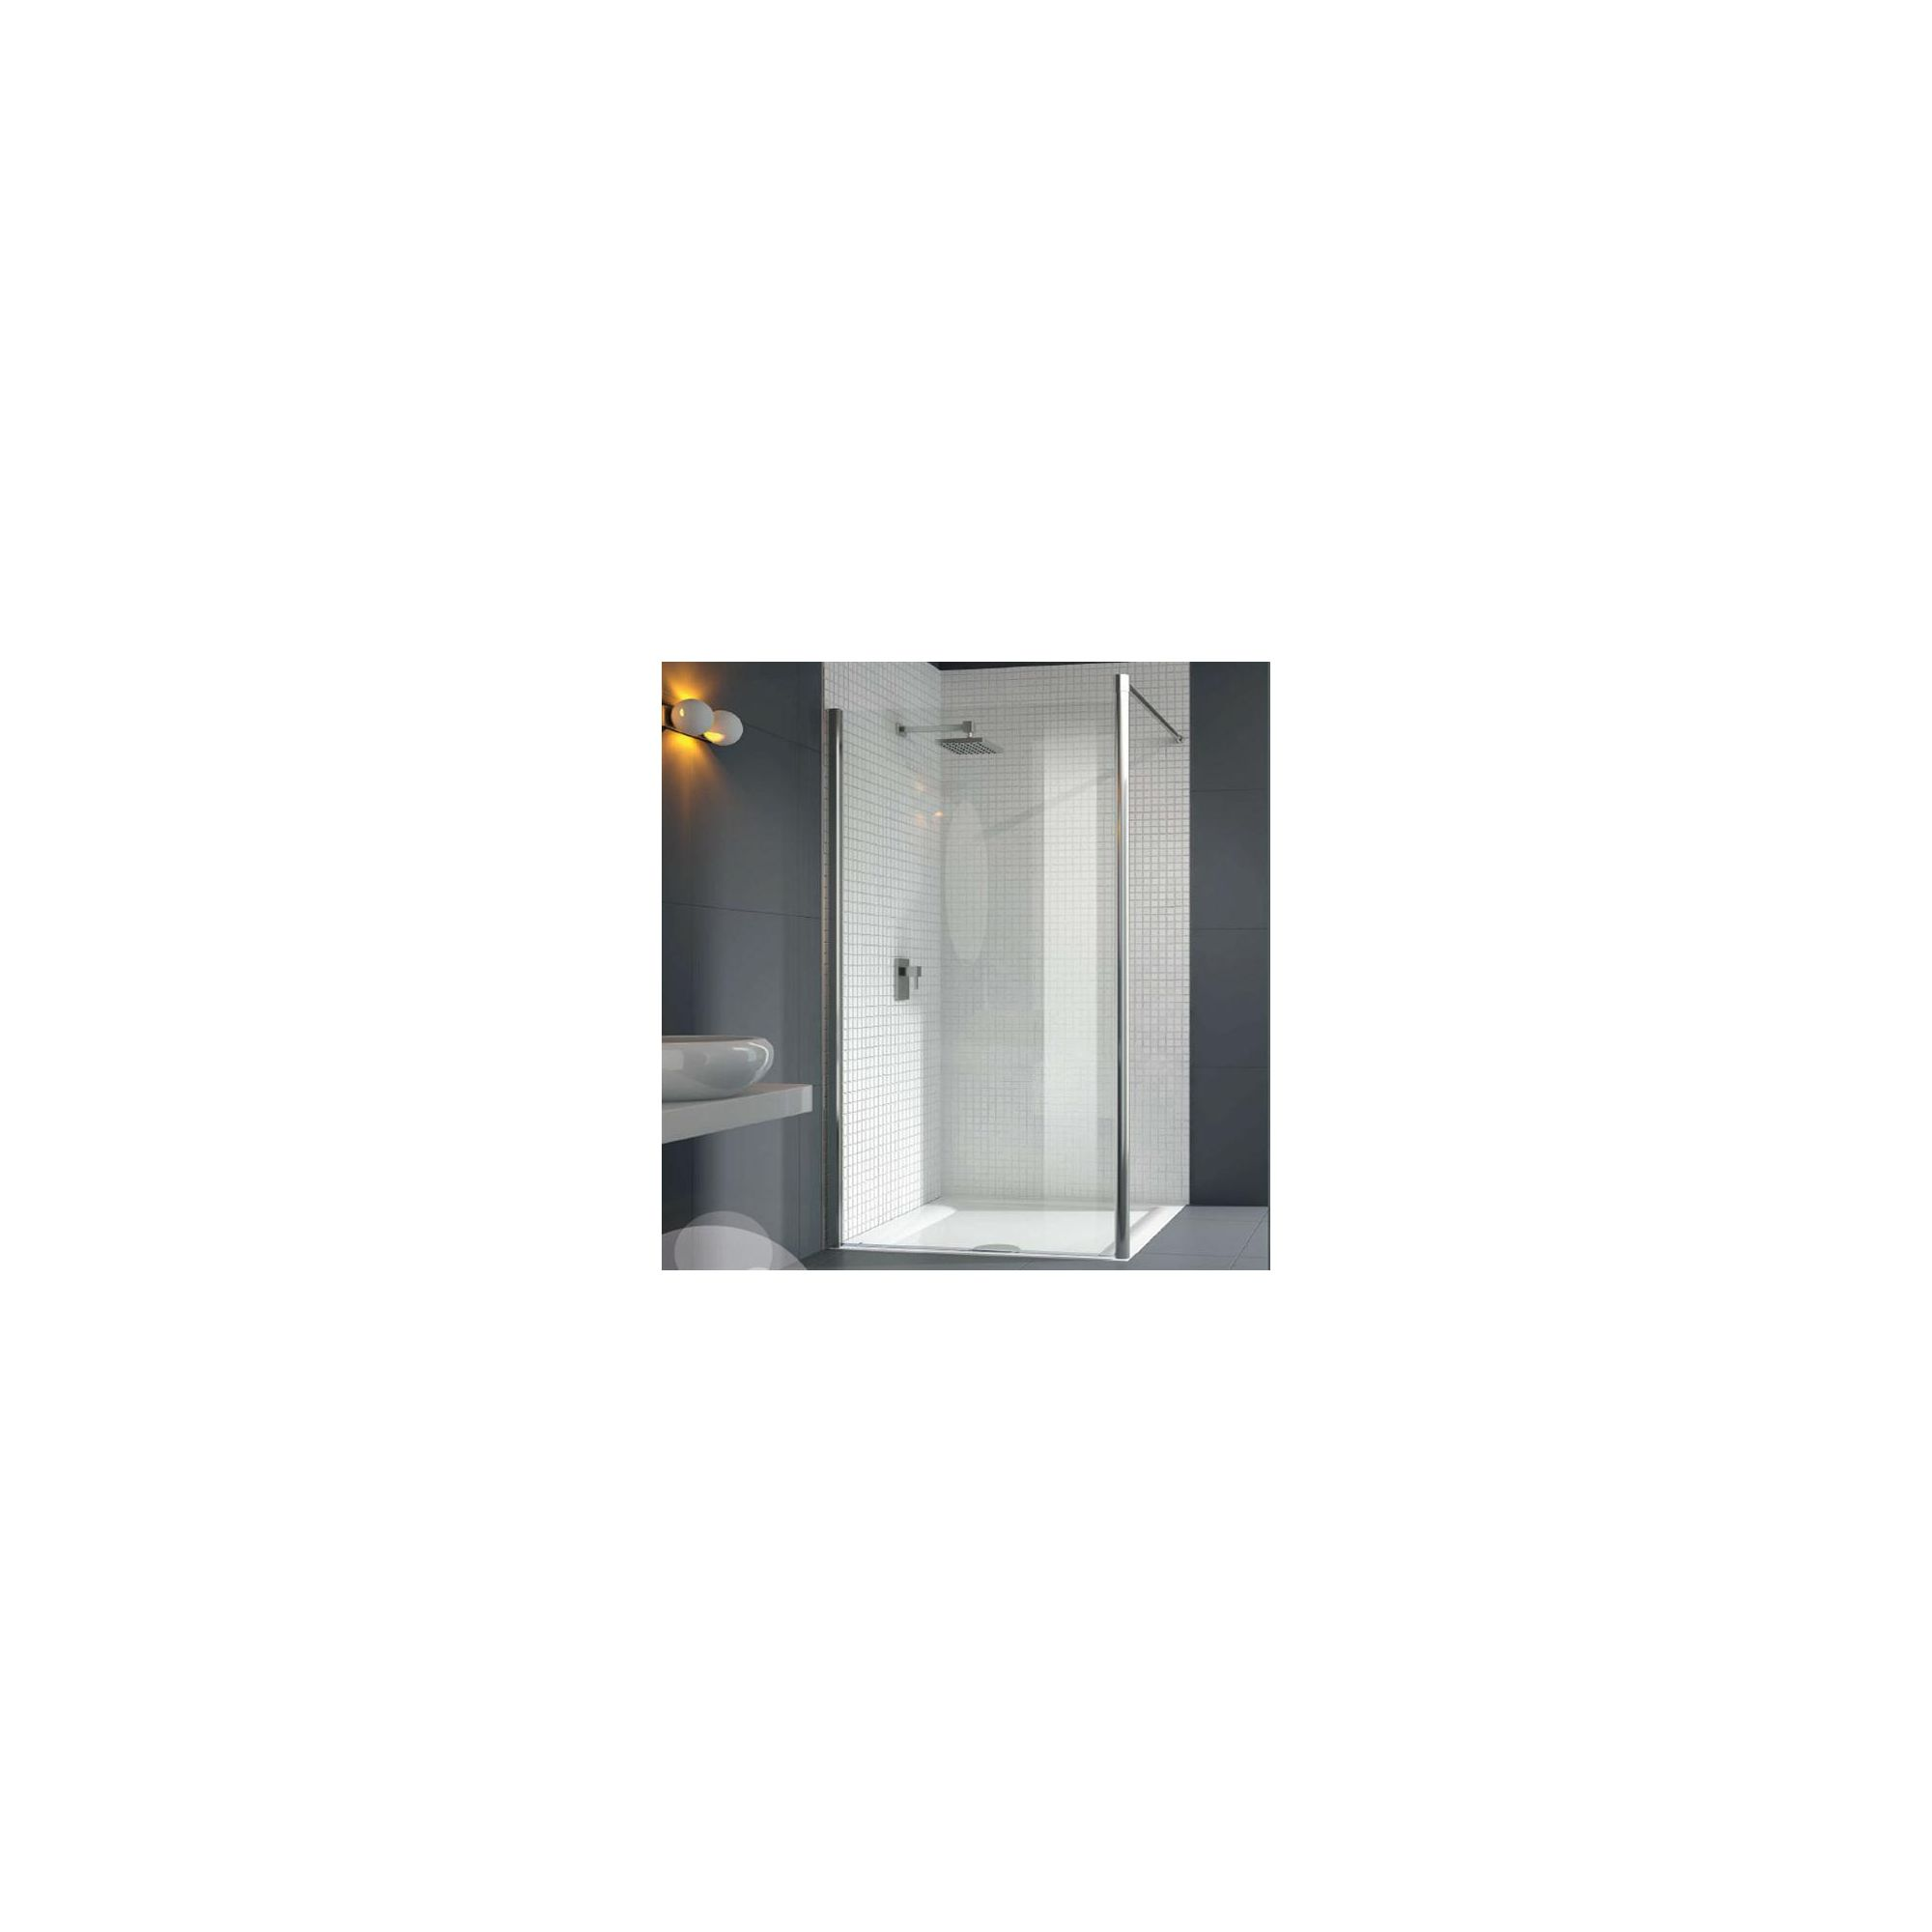 Merlyn Vivid Six Wet Room Shower Enclosure, 1200mm x 900mm, Horizontal Support Bar, Low Profile Tray, 6mm Glass at Tescos Direct